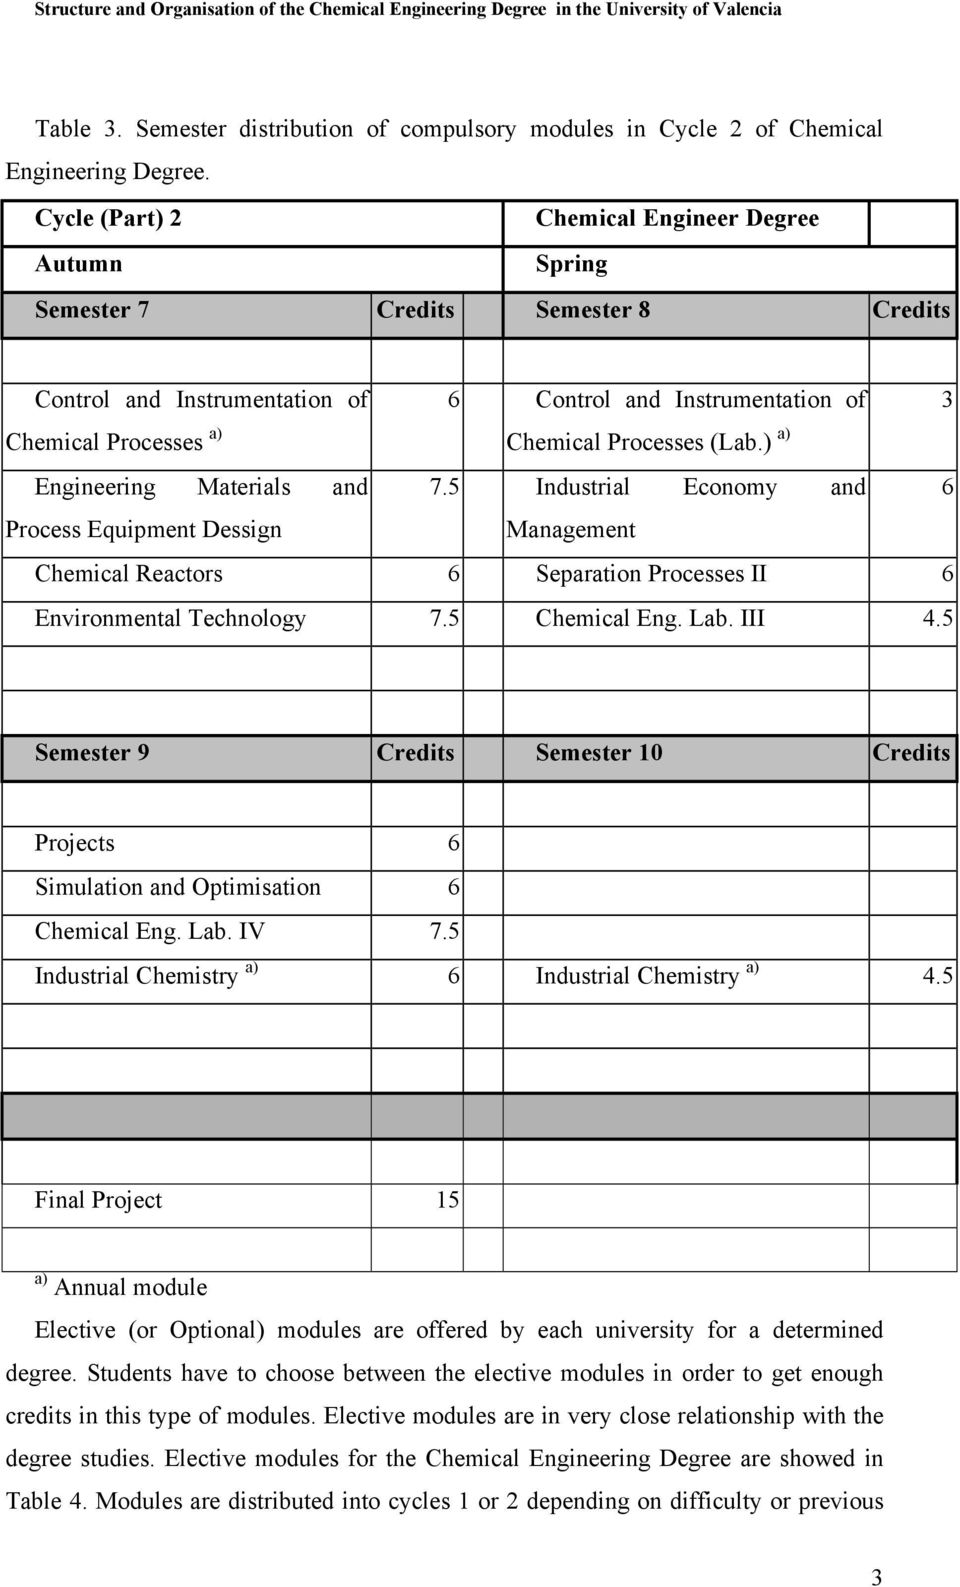 (Lab.) a) Engineering Materials and Process Equipment Dessign 7.5 Industrial Economy and Management Chemical Reactors 6 Separation Processes II 6 Environmental Technology 7.5 Chemical Eng. Lab. III 4.